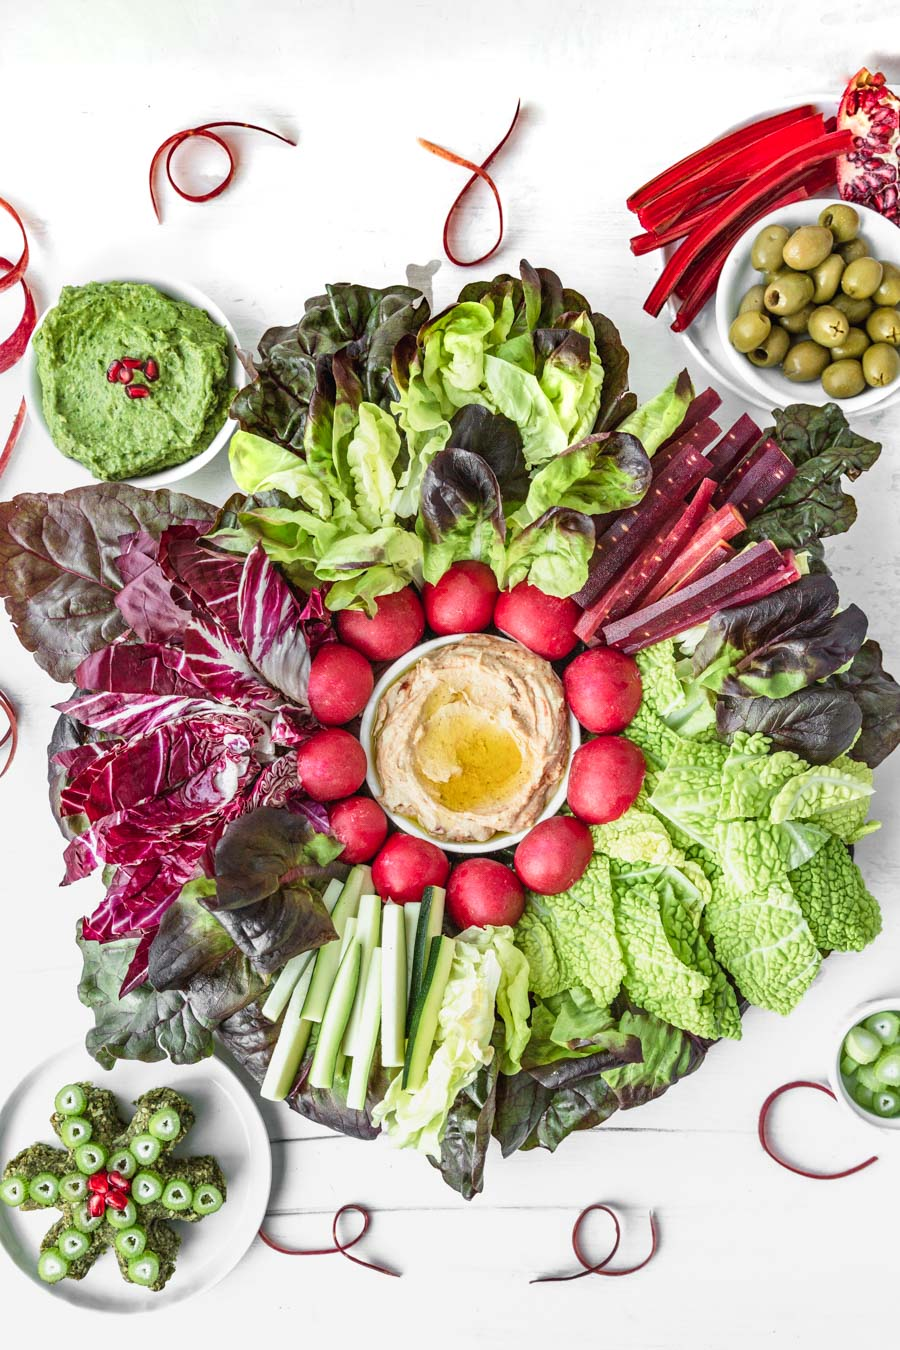 Easy Red & Green Christmas Holiday Veggie Platter with Vegan Arugula-Pecan Cheesy Spread, Power Greens Guacamole, and Hummus. Recipes and photo by Kari of Beautiful Ingredient. #vegan #plantbased #crudite #veggieplatter #redandgreen #christmas #holiday #appetizer #veggies #cheeseboard #partytray